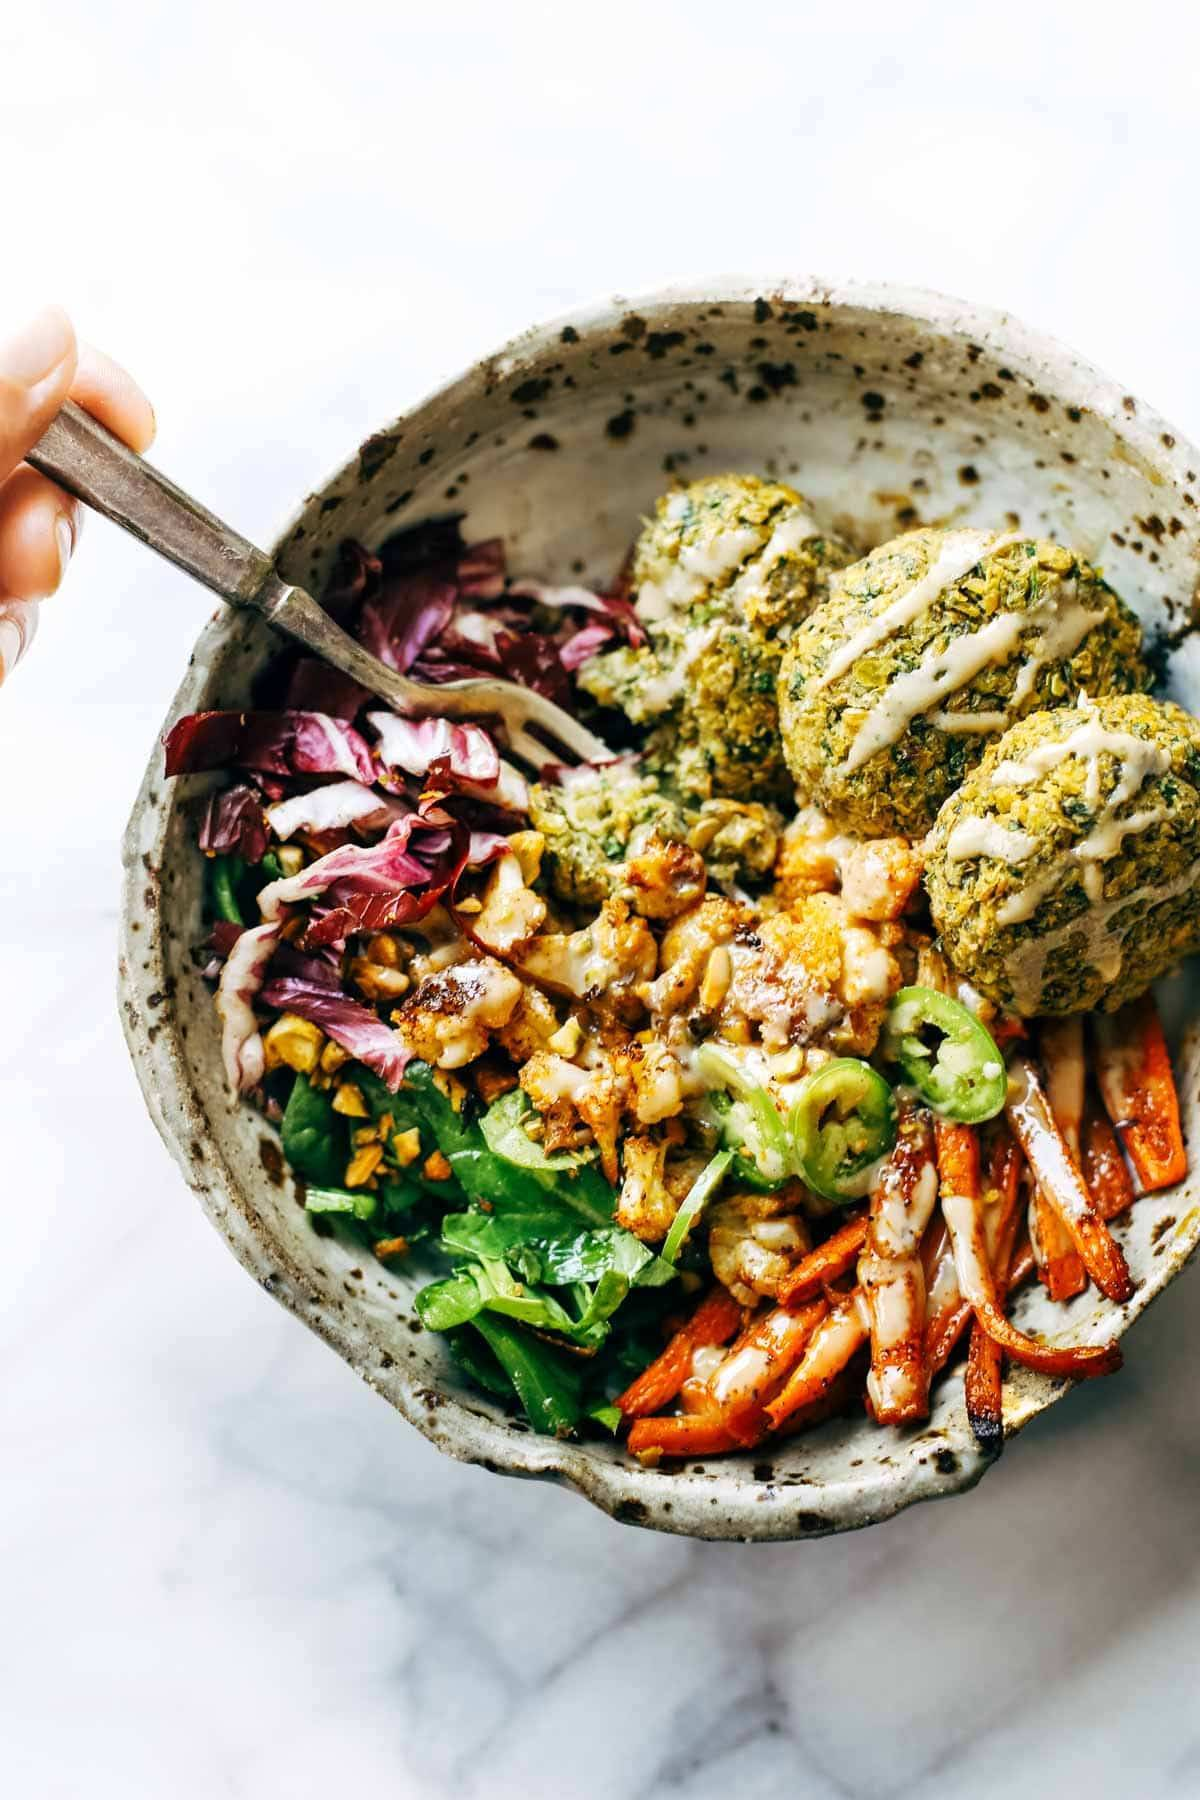 Keep your glow all winter! Easy homemade falafel, roasted veggies, and flavorful sauce all in one big bliss bowl! vegetarian / vegan / gluten free recipe. | pinchofyum.com